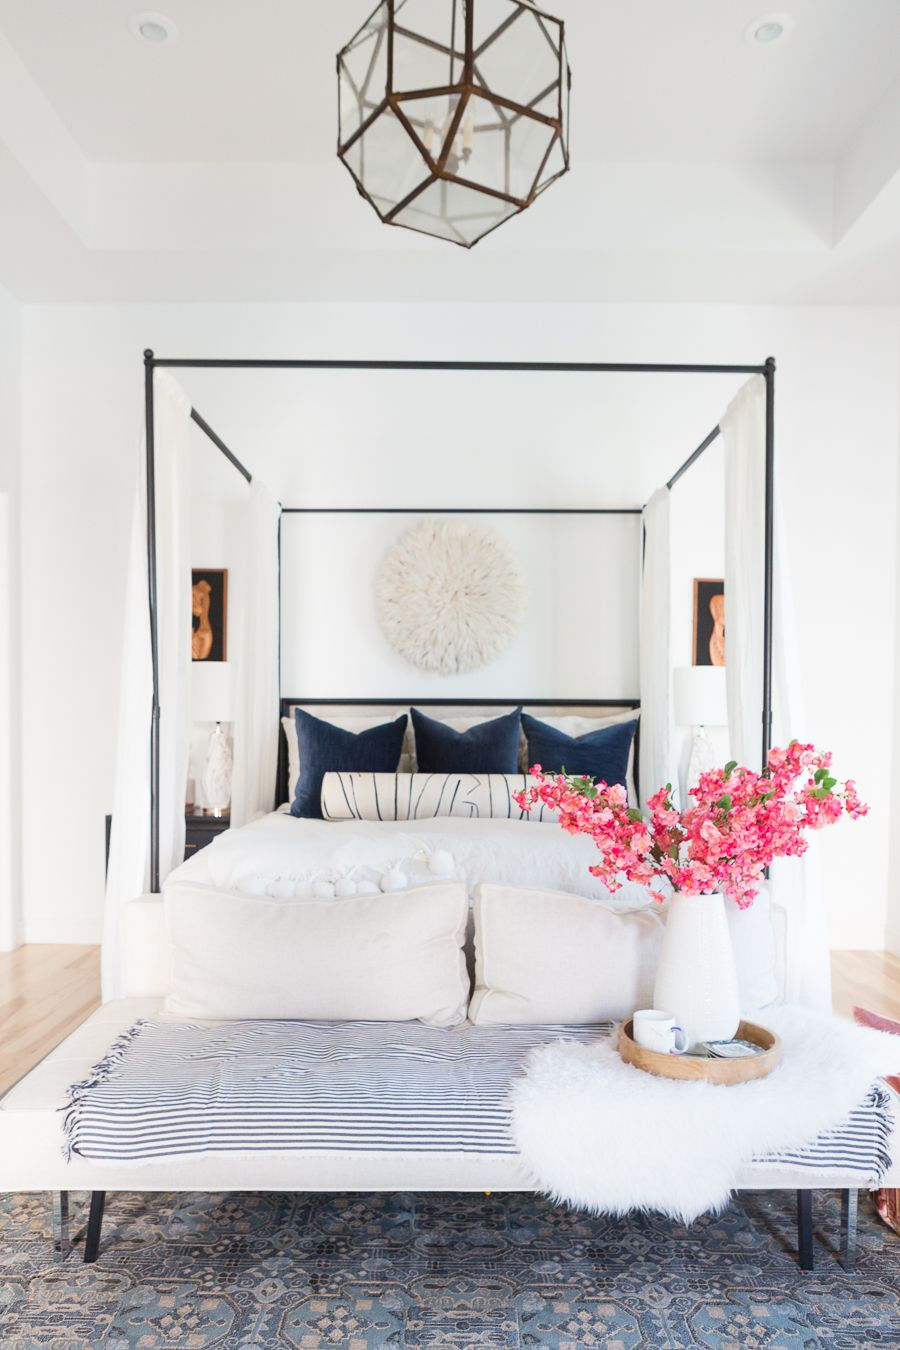 How to use a juju hat in home decor abode pinterest bedroom